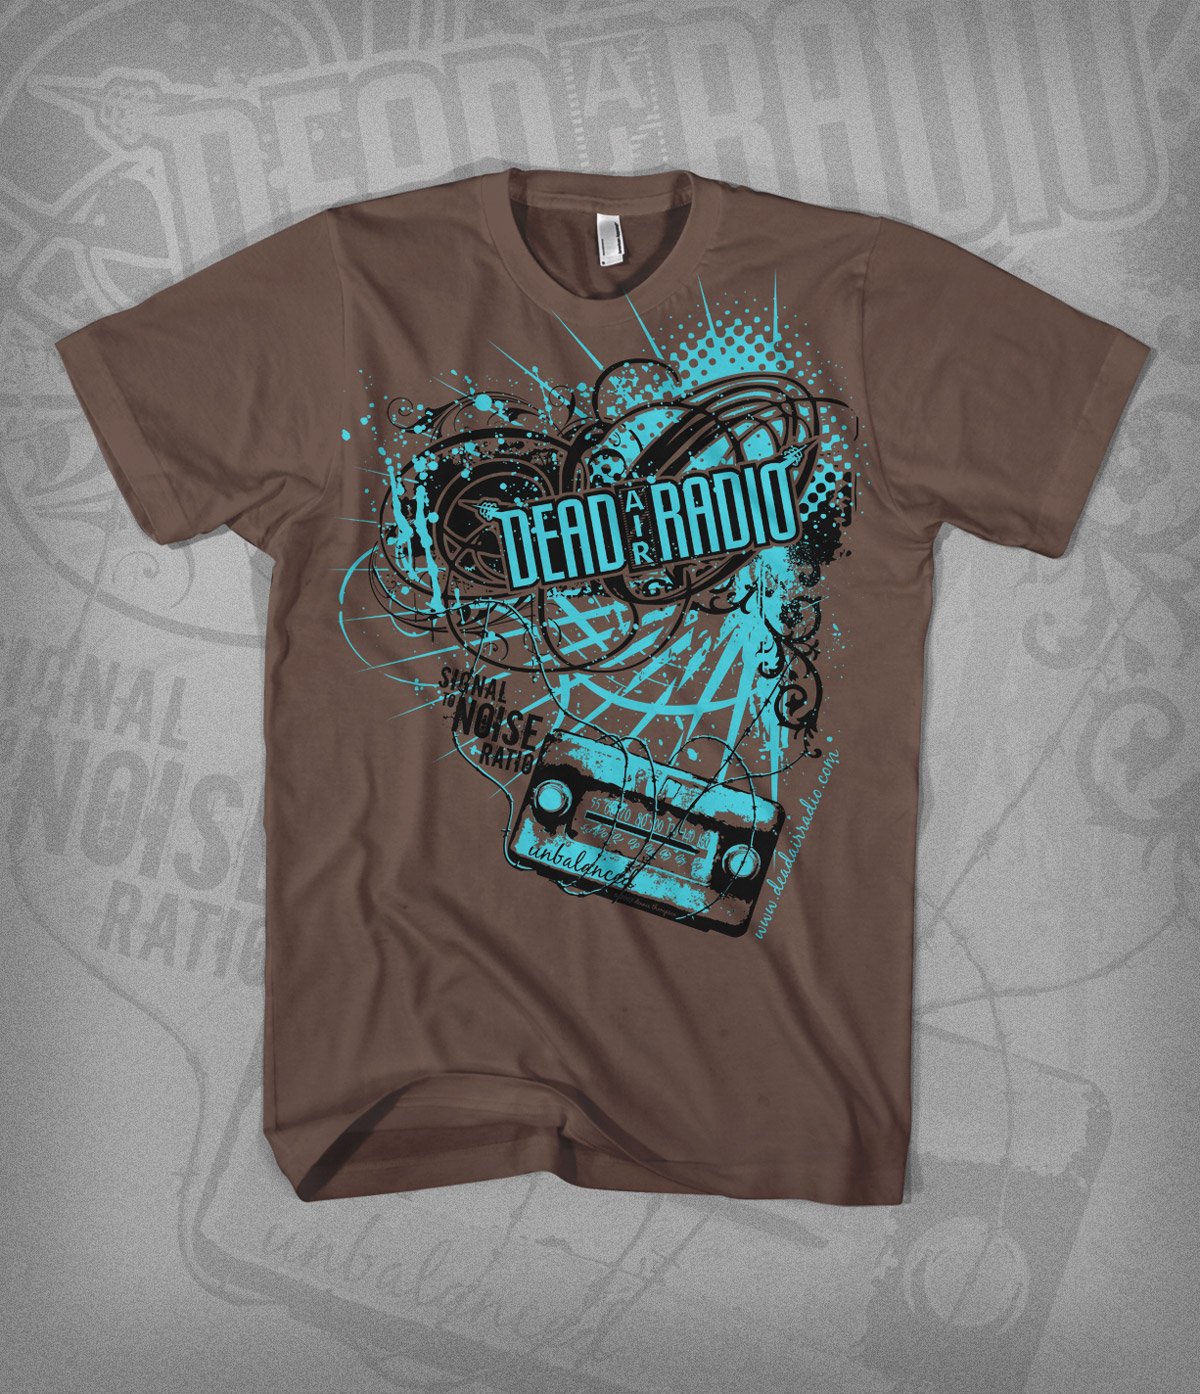 STNR tshirt design - brown